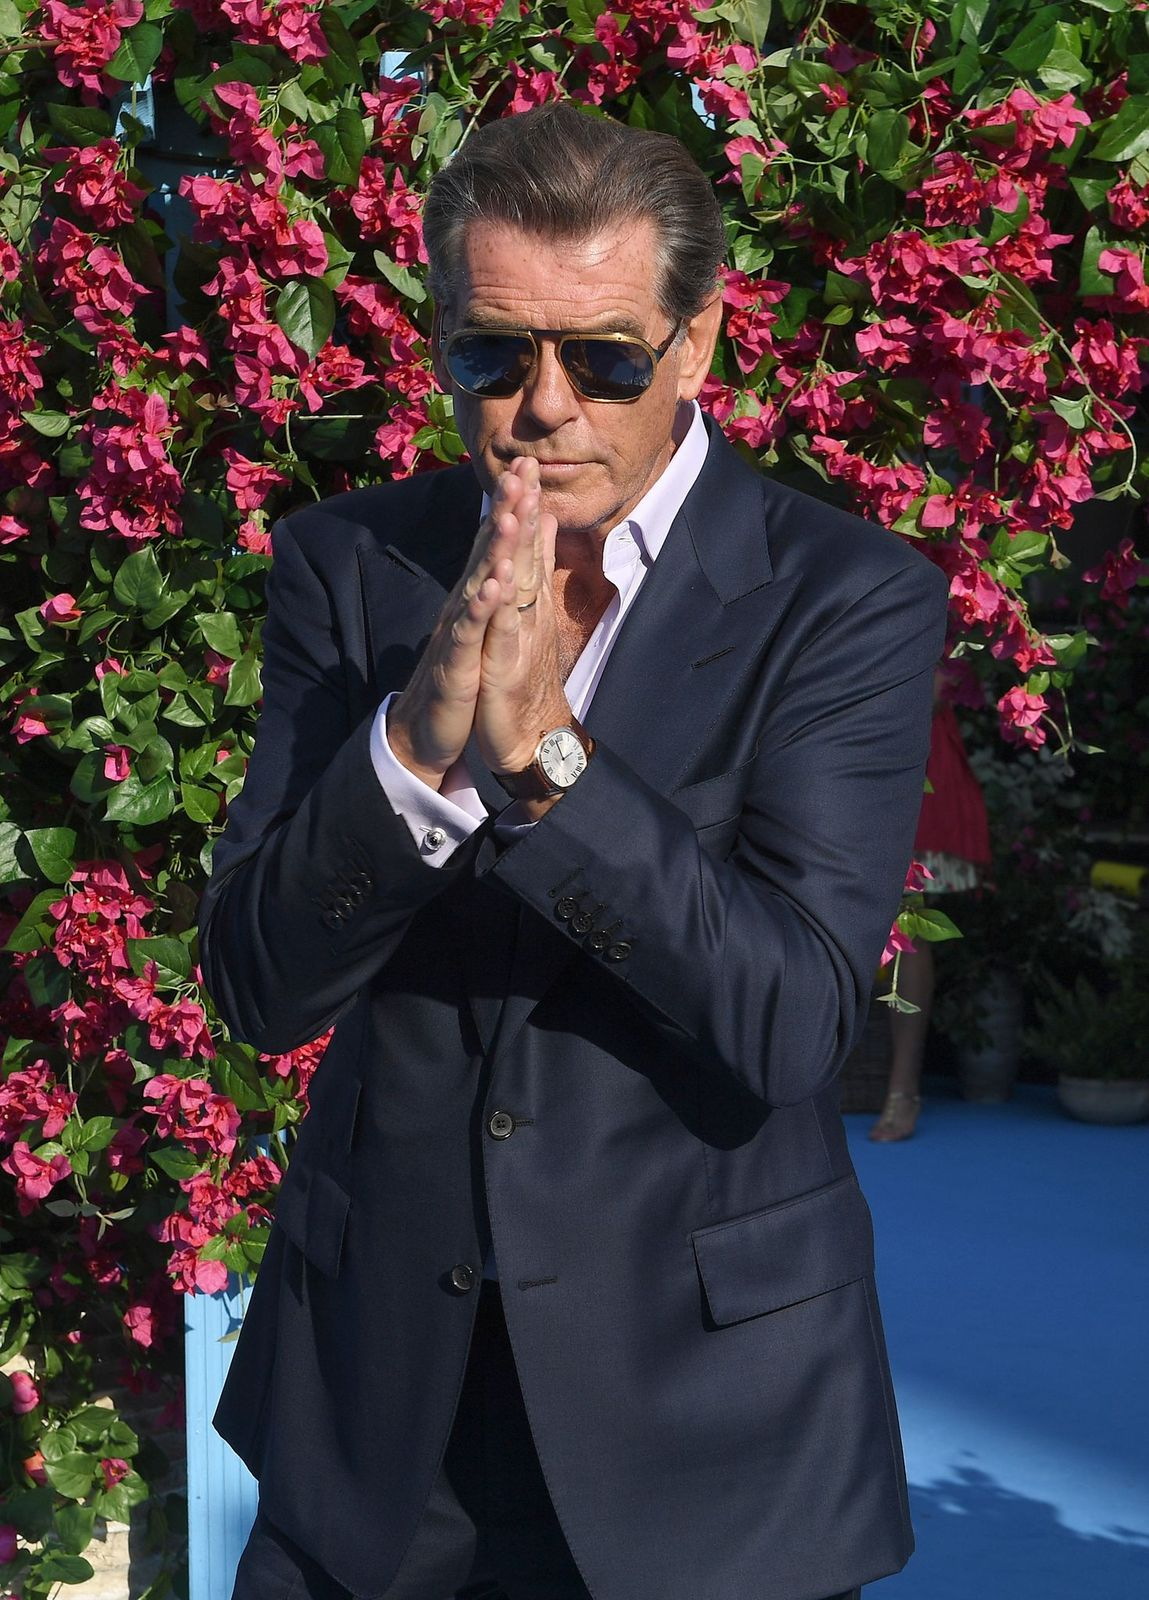 """Pierce Brosnan at the """"Mamma Mia! Here We Go Again"""" world premiere on July 16, 2018, in London, England 